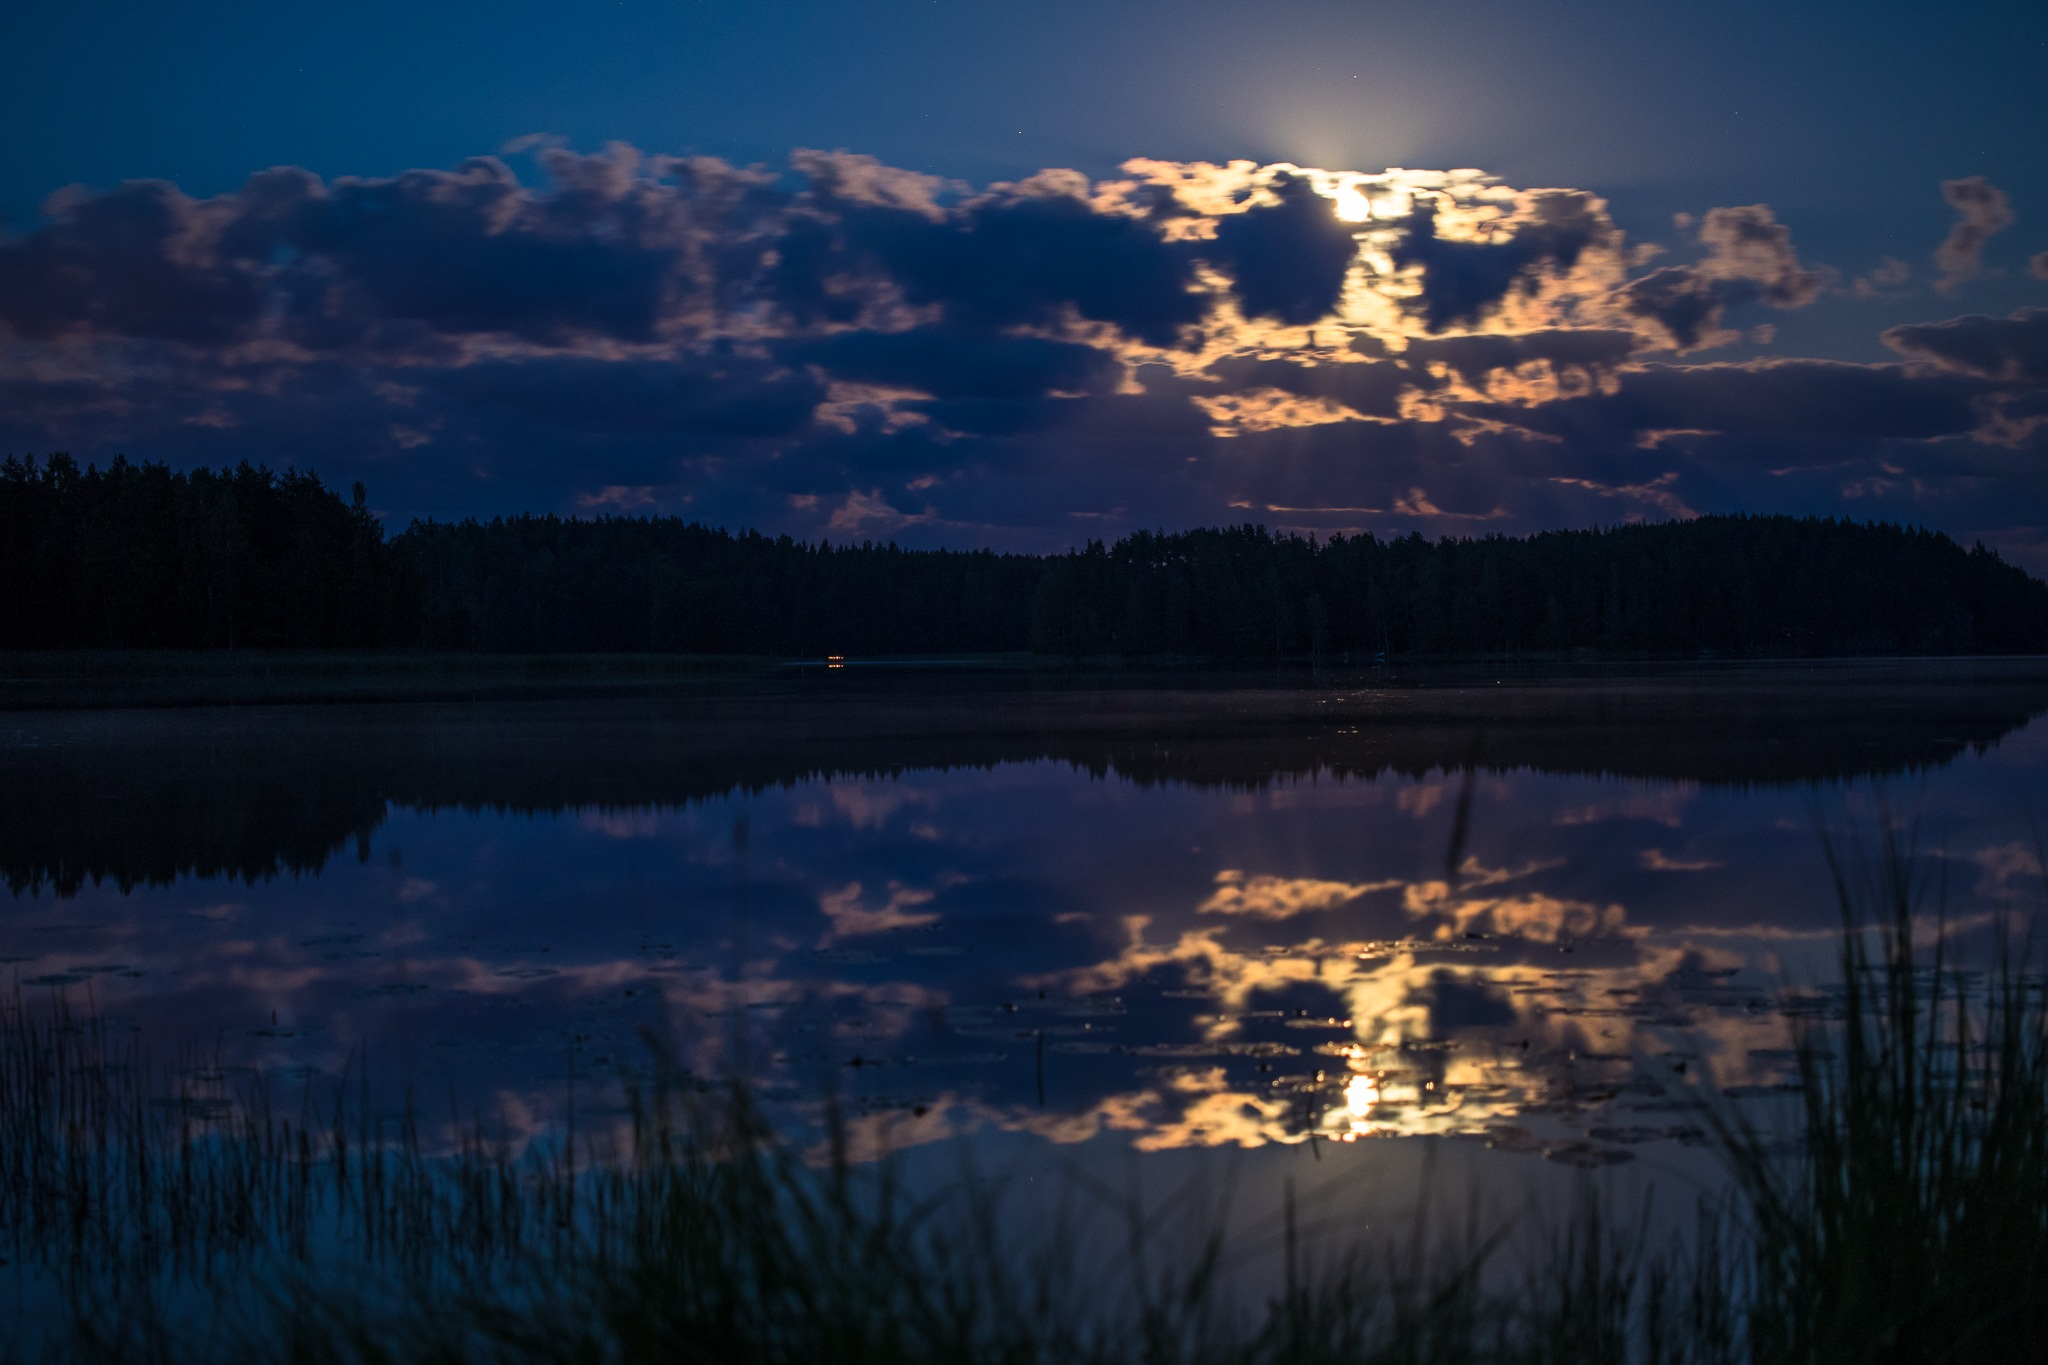 August moonlight  by Anne_V